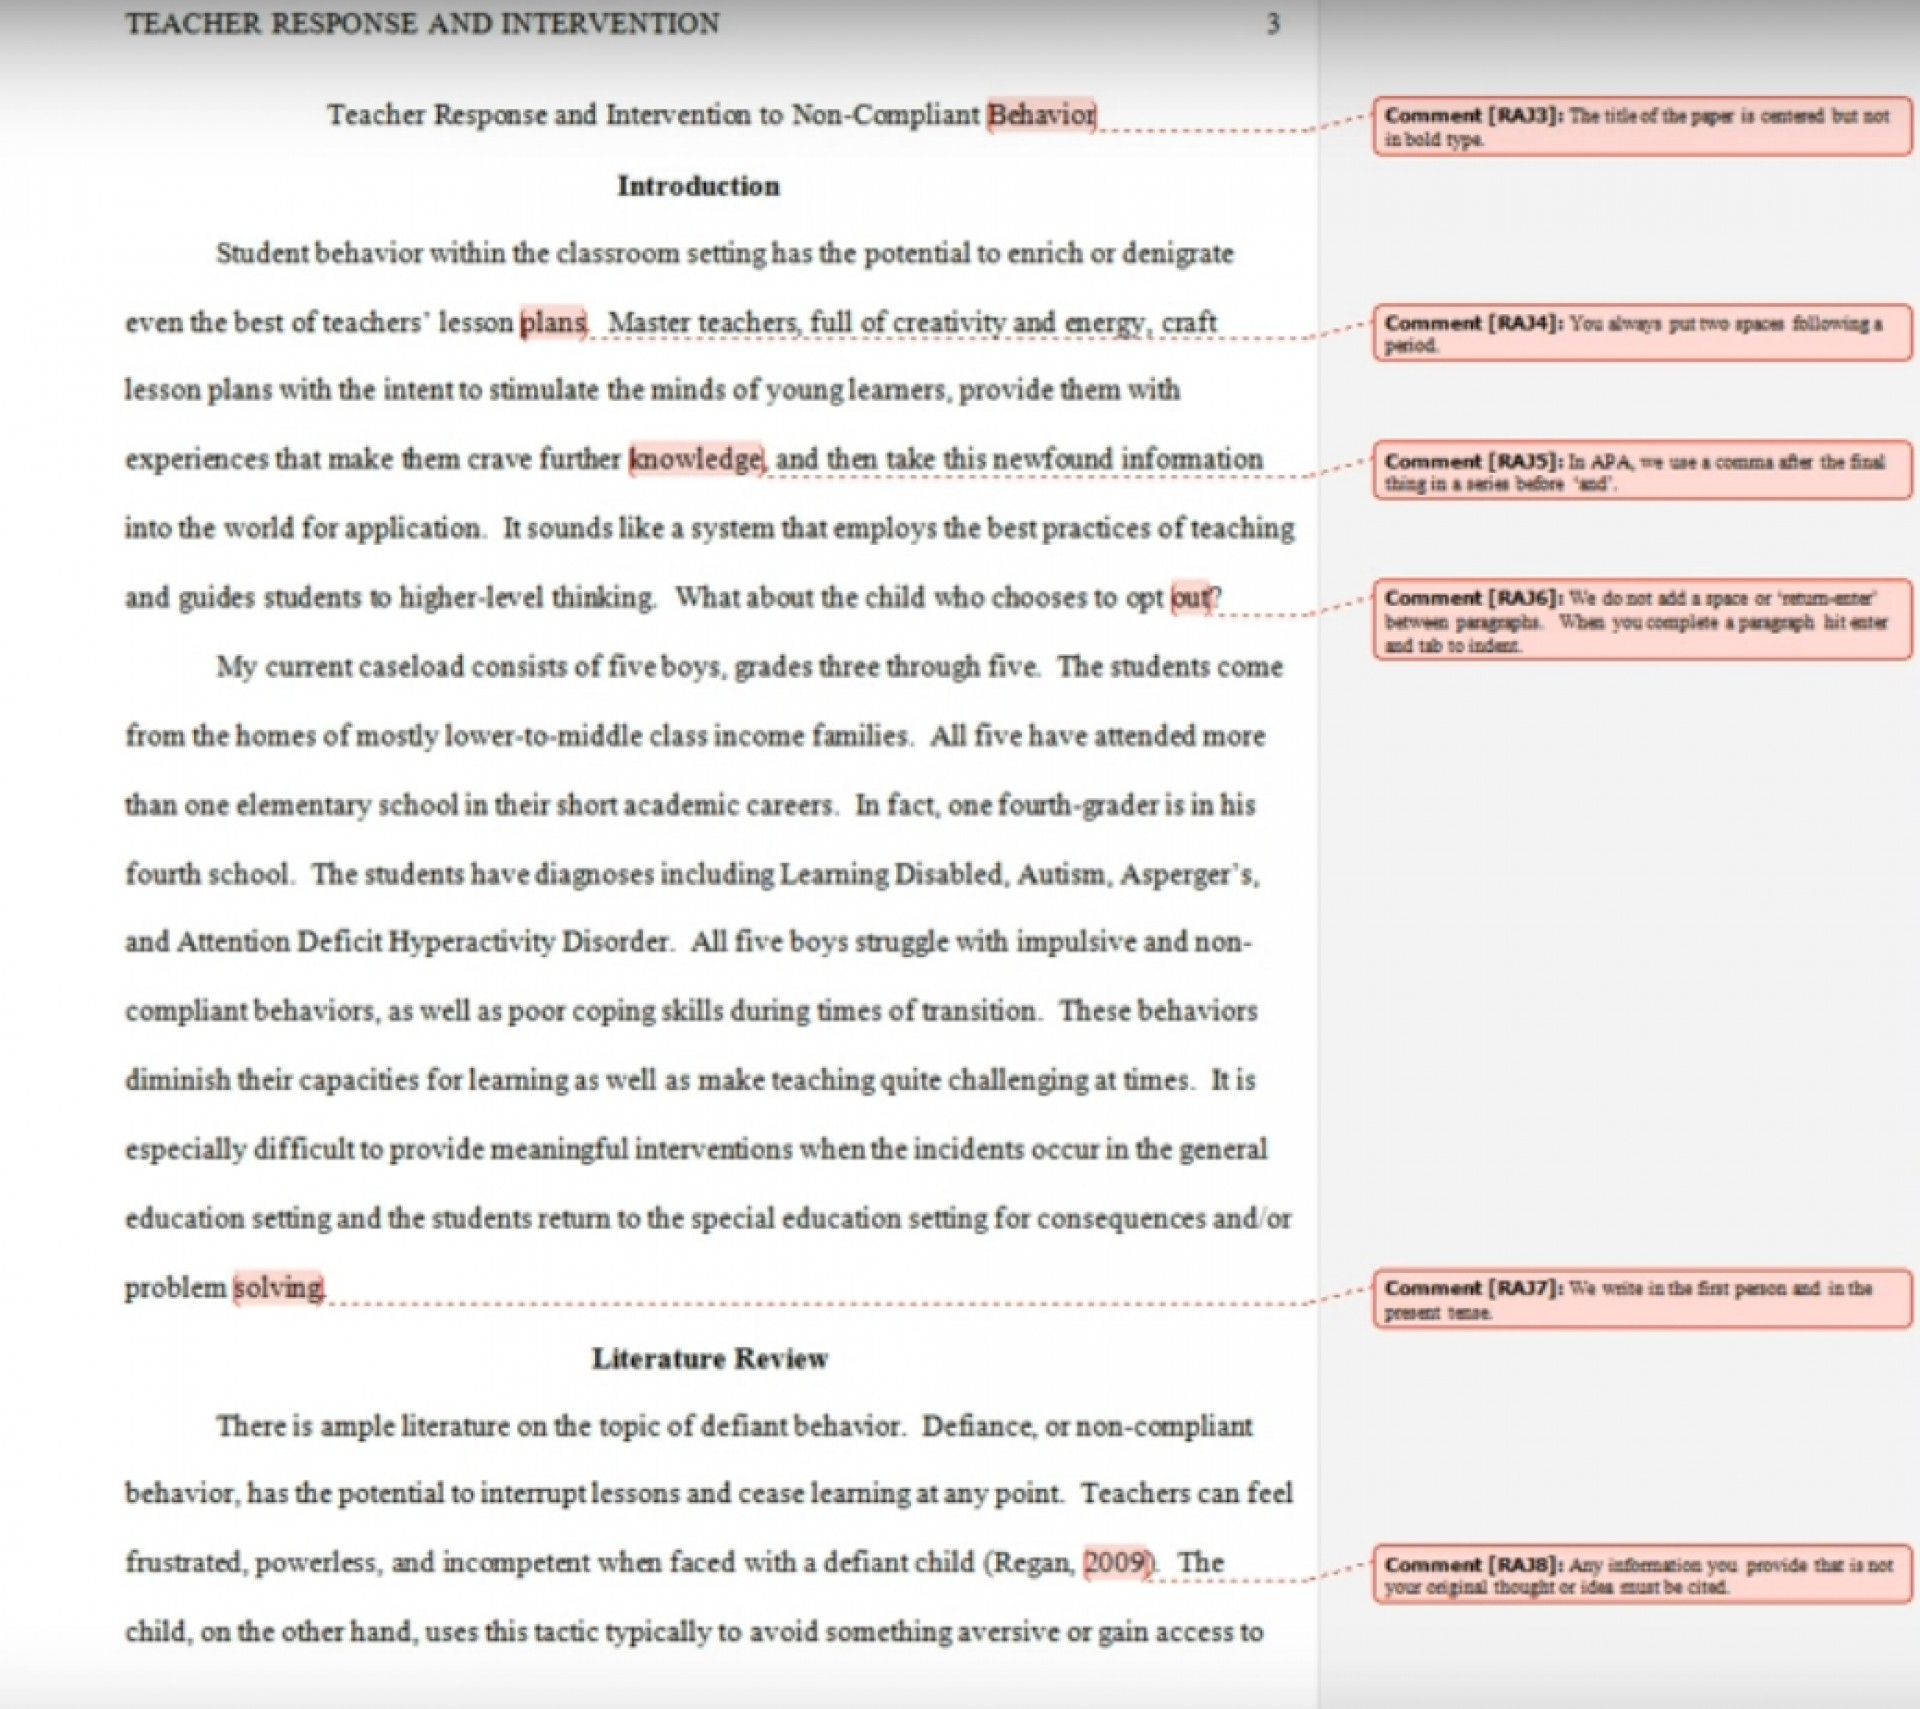 023 How To Research Paper Introduction Top Hot Topics In Corporate Finance Make Format Publish Quora 1920